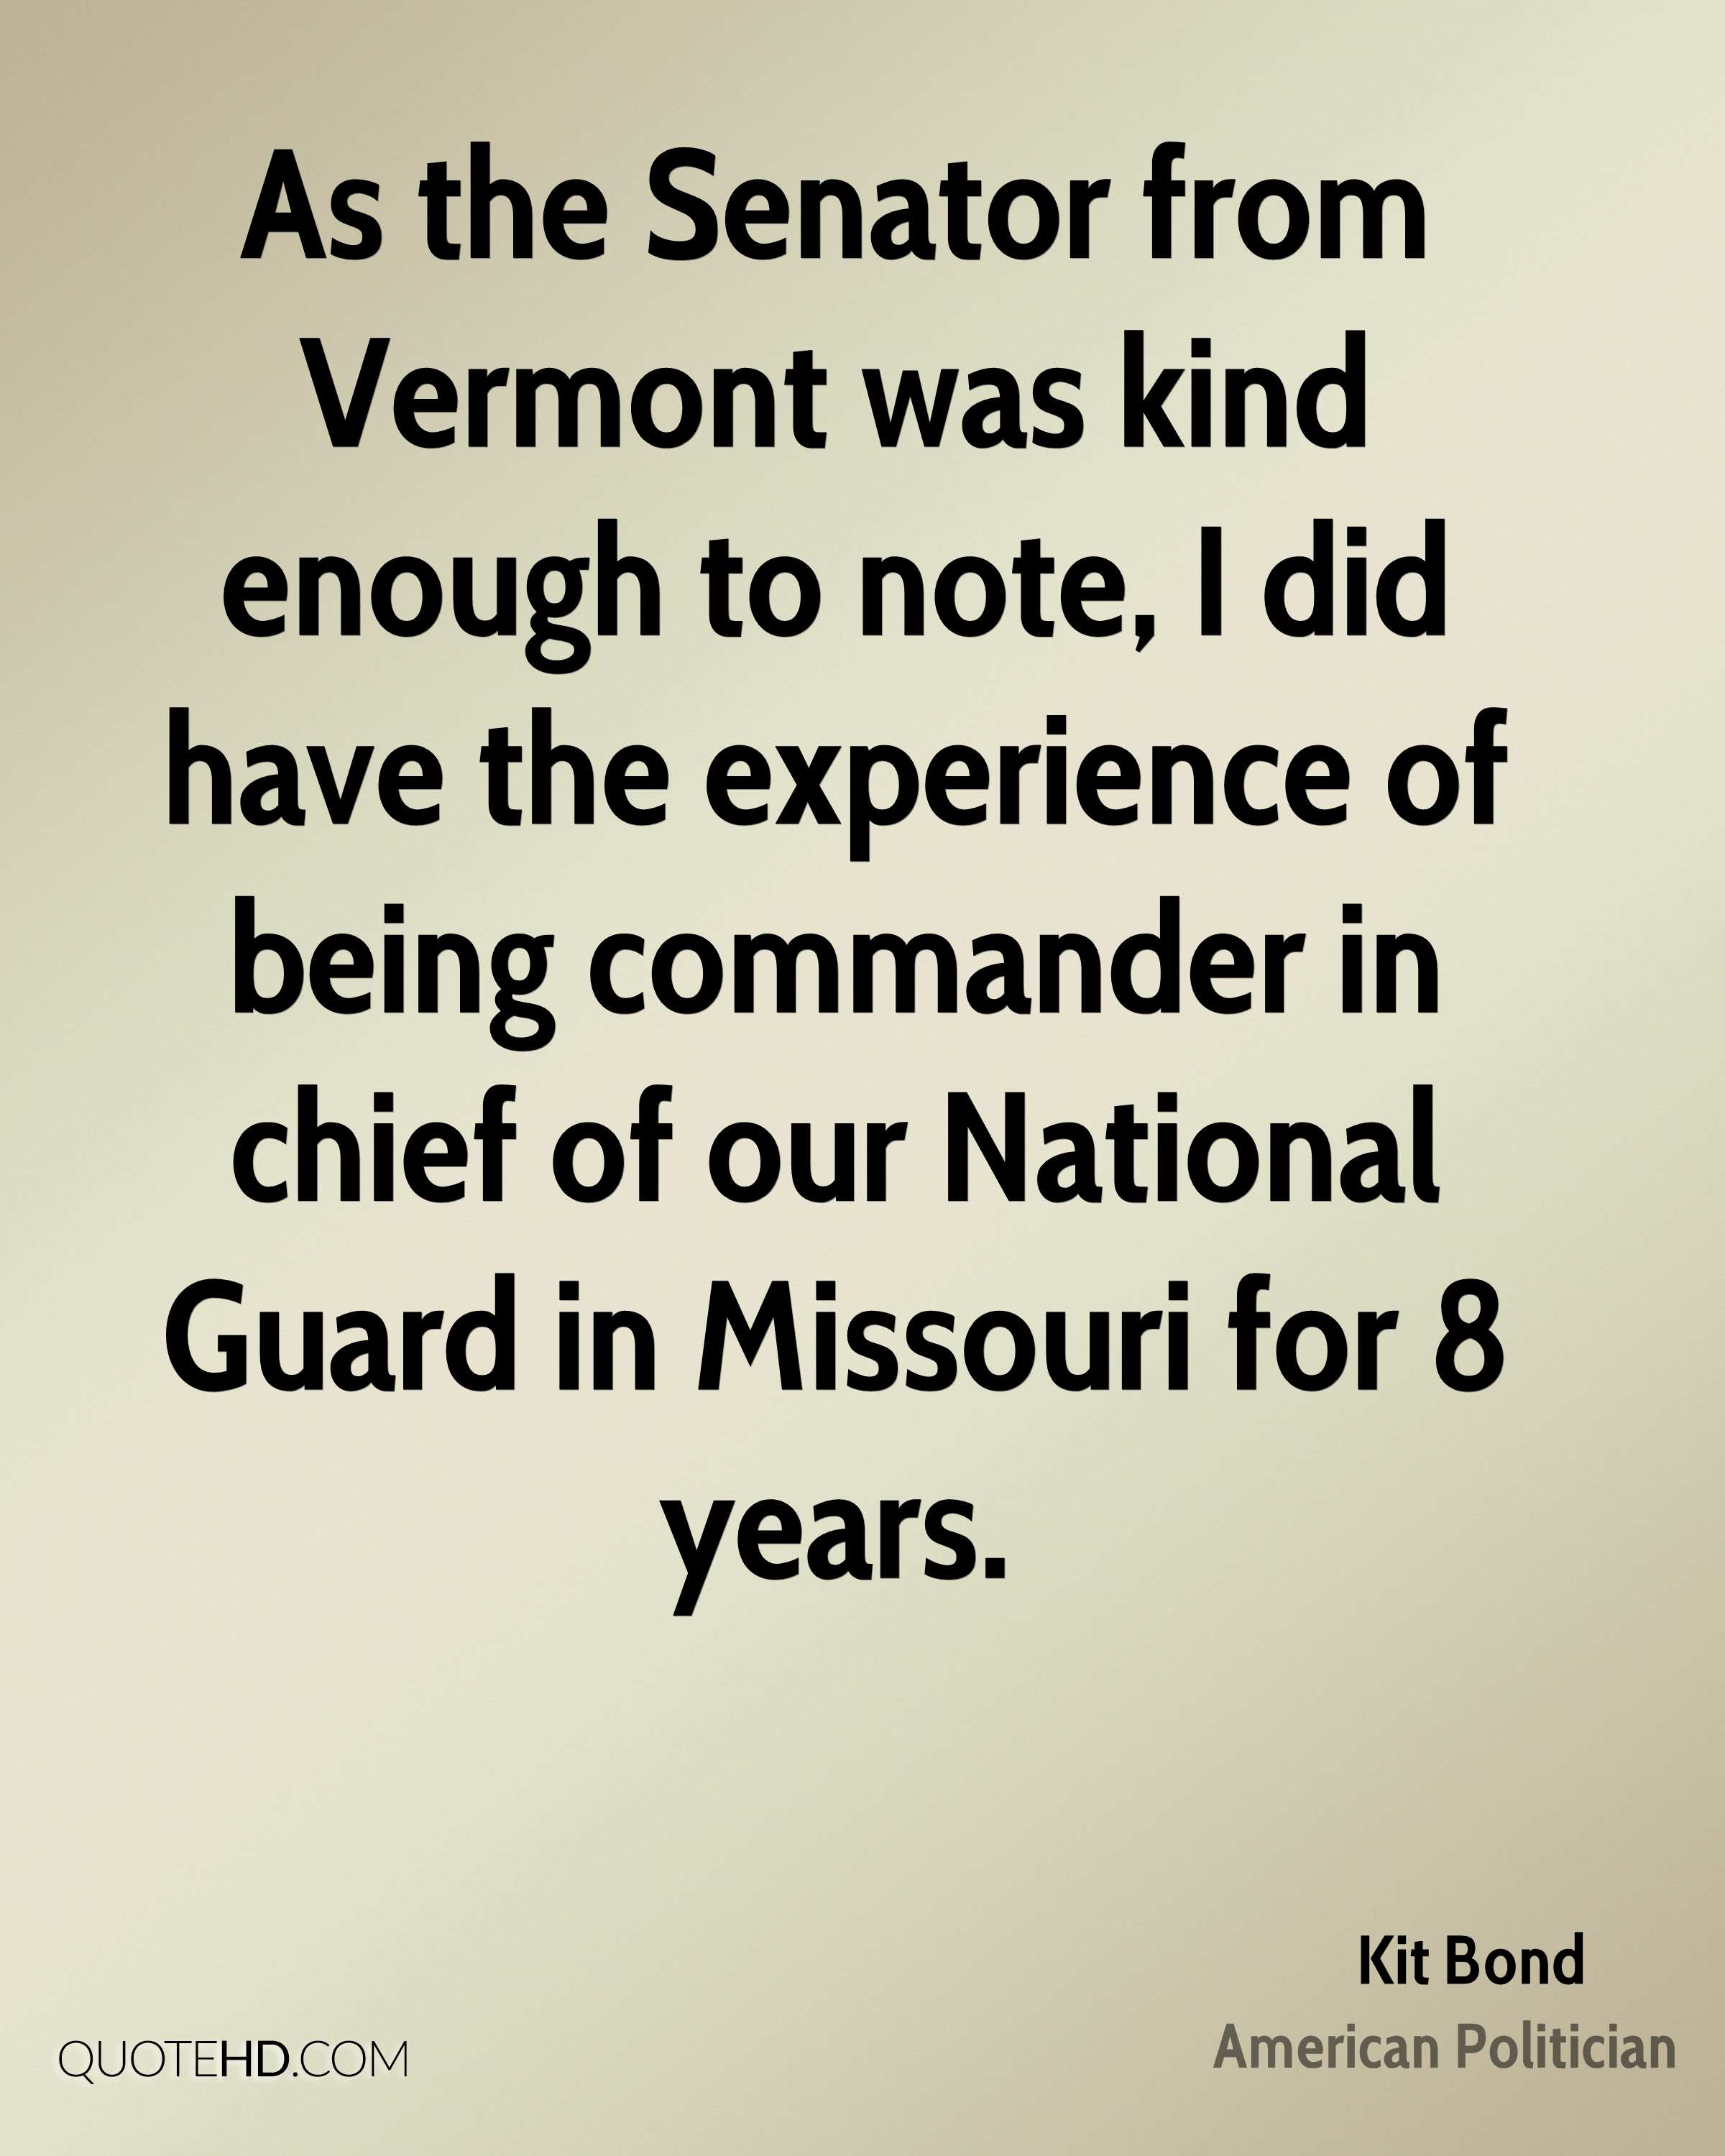 As the Senator from Vermont was kind enough to note, I did have the experience of being commander in chief of our National Guard in Missouri for 8 years.